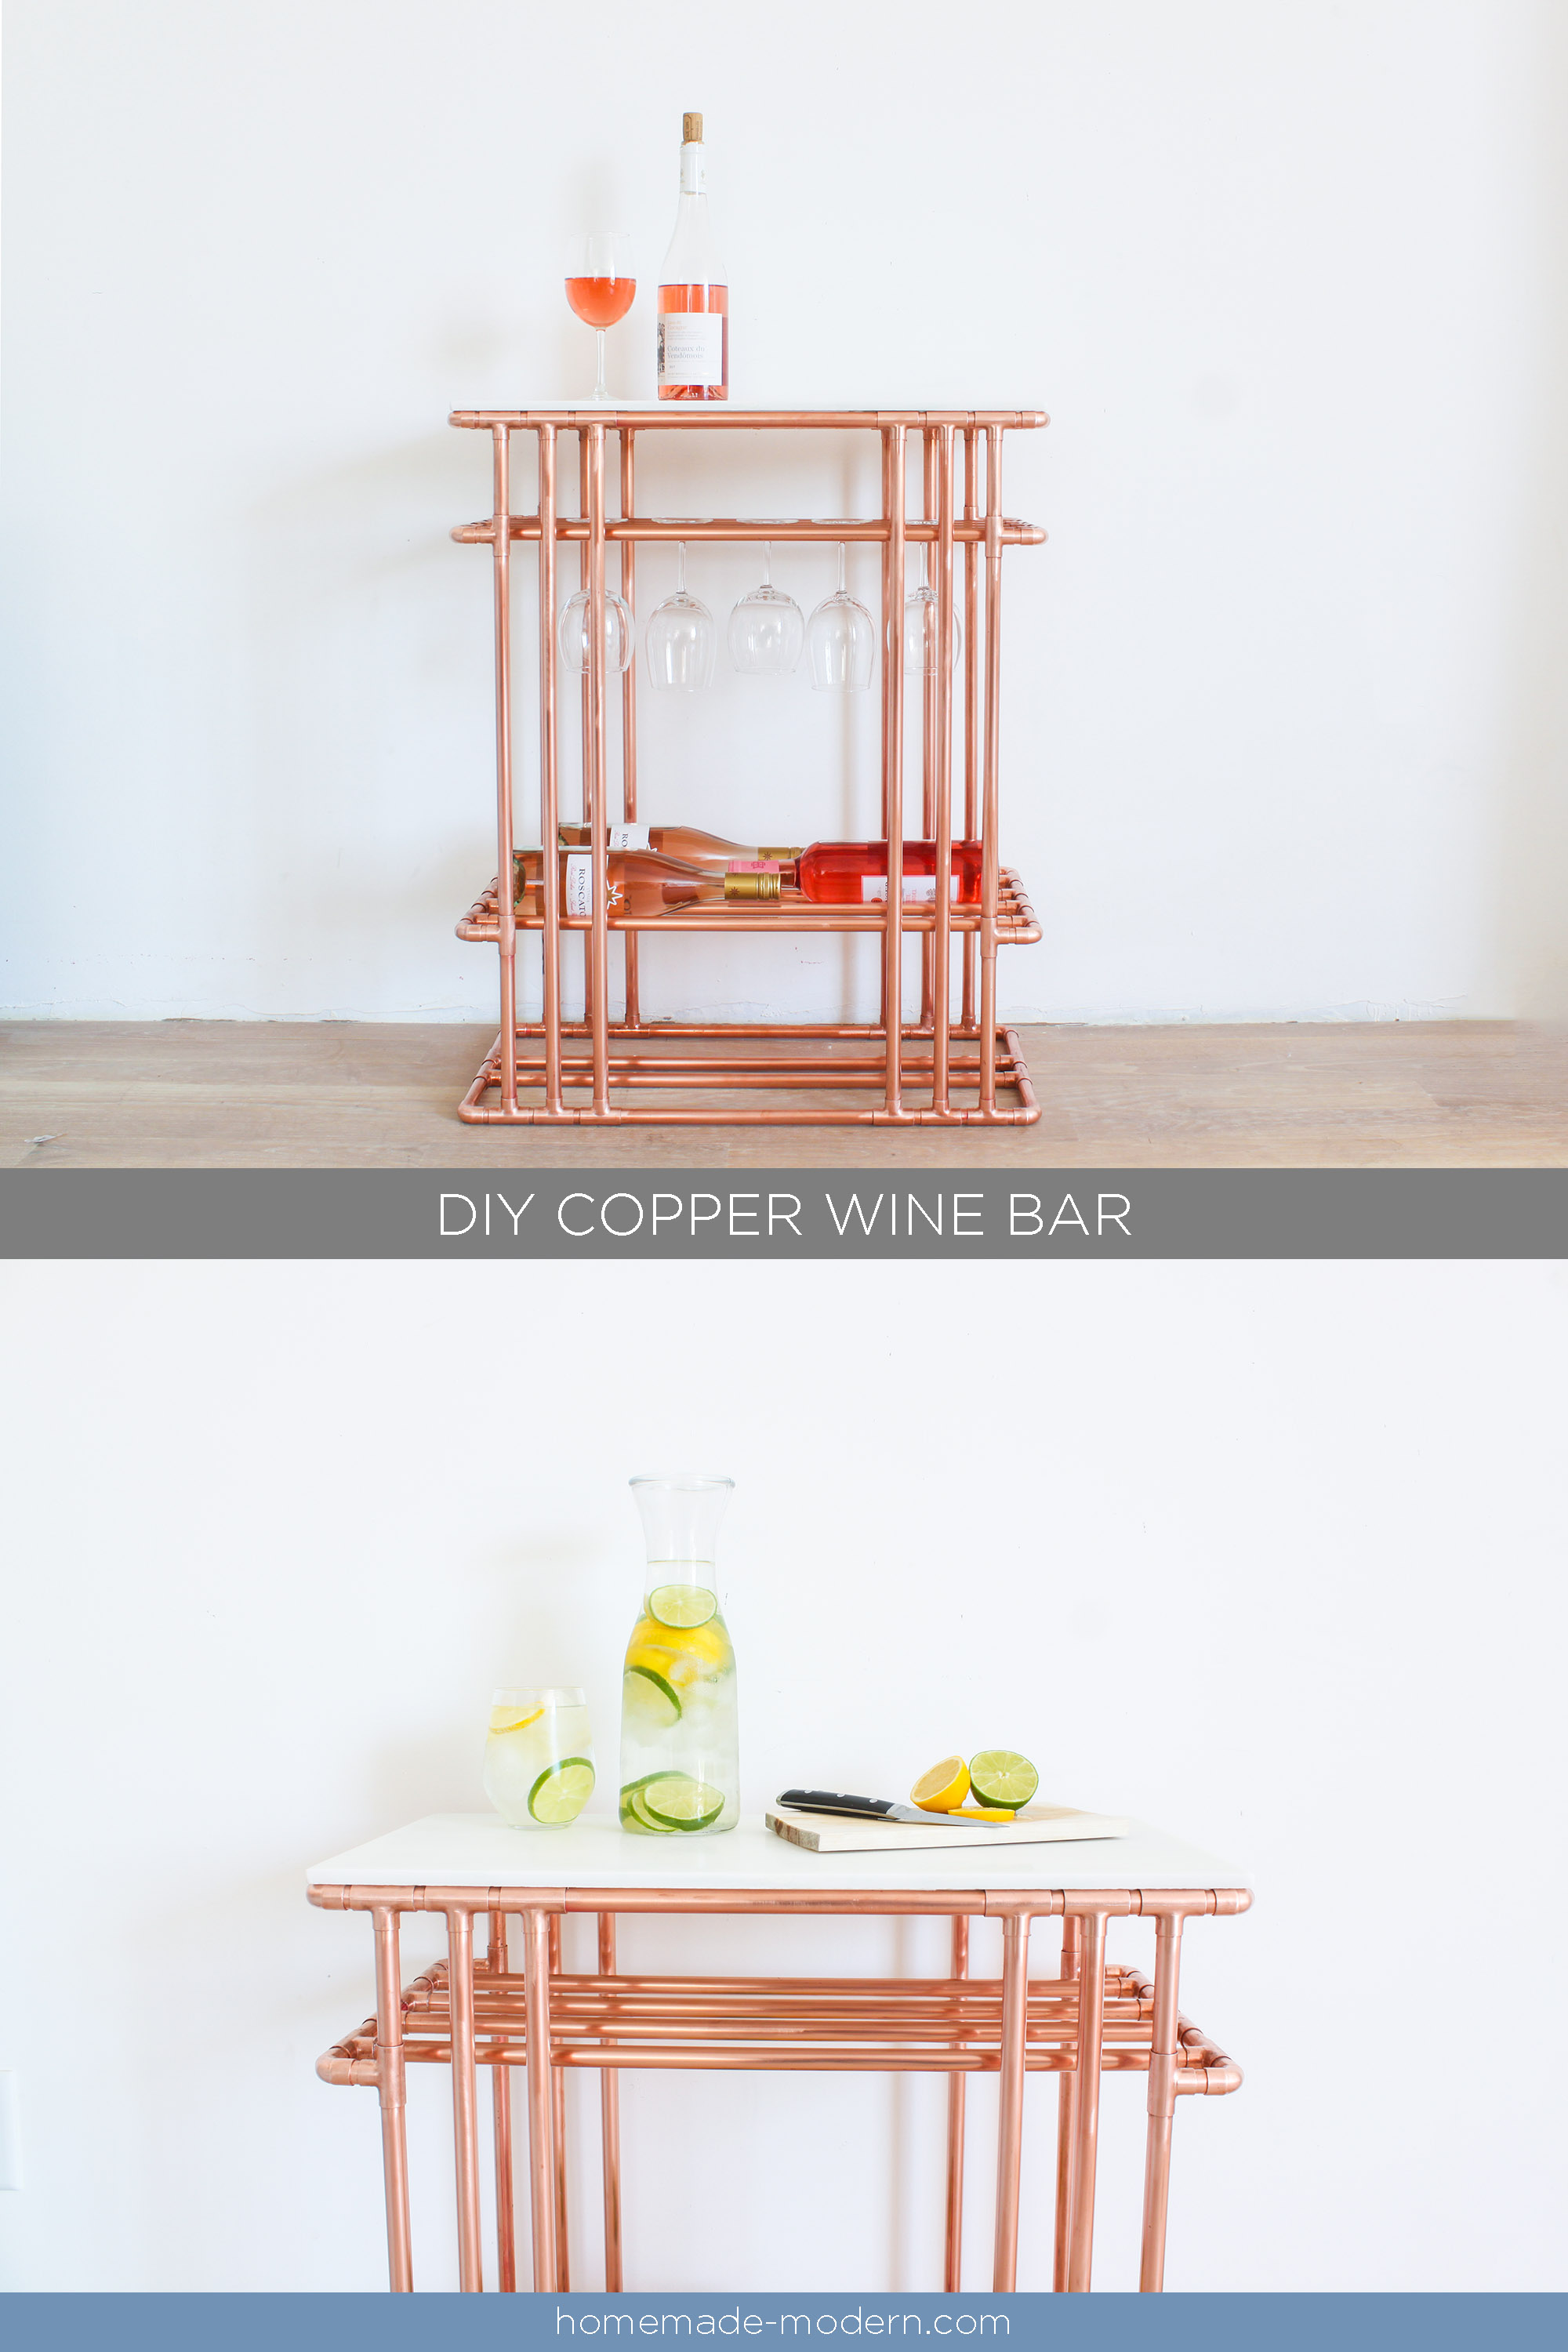 This DIY Copper Wine Bar is made entirely out of materials from The Home Depot. Full instructions can be found at HomeMade-Modern.com